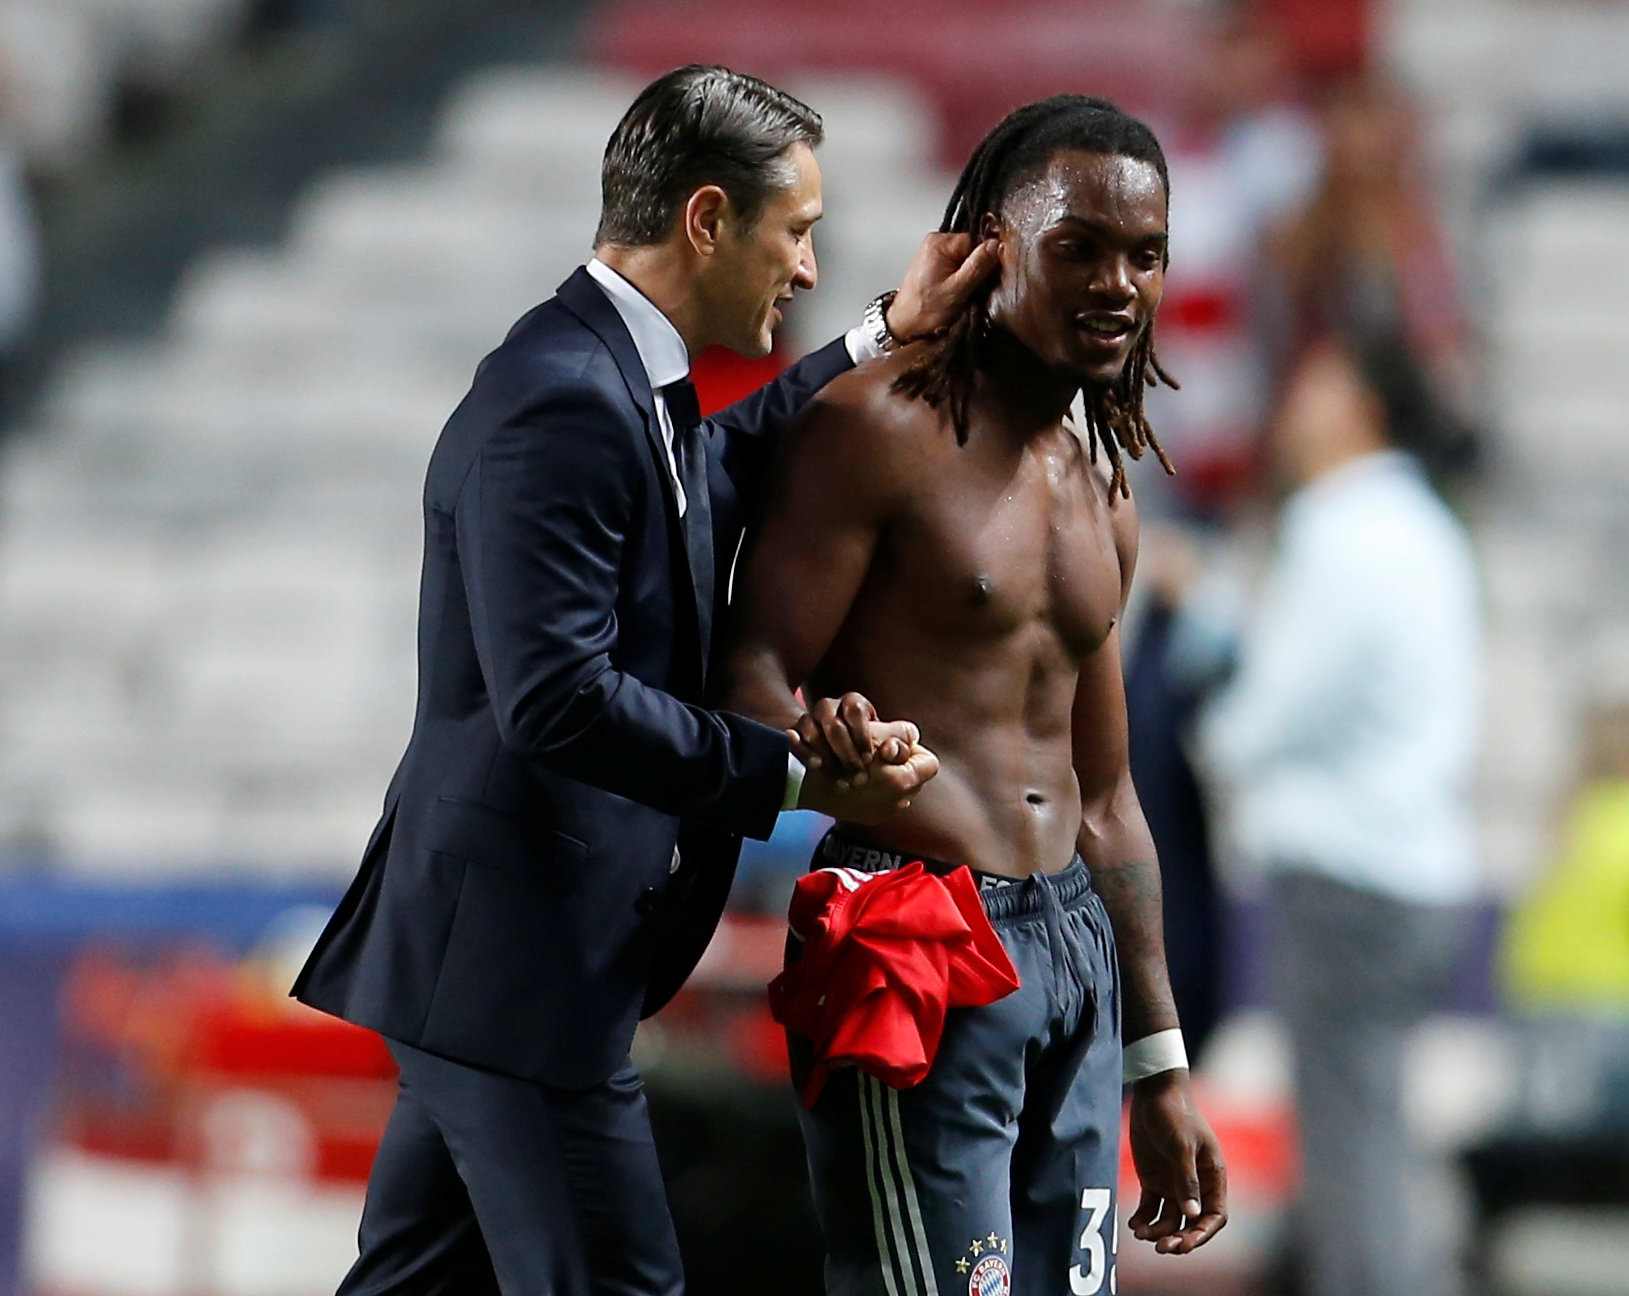 Soccer Football - Champions League - Group Stage - Group E - Benfica v Bayern Munich - Estadio da Luz, Lisbon, Portugal - September 19, 2018  Bayern Munich coach Niko Kovac with Renato Sanches at the end of the match   REUTERS/Pedro Nunes